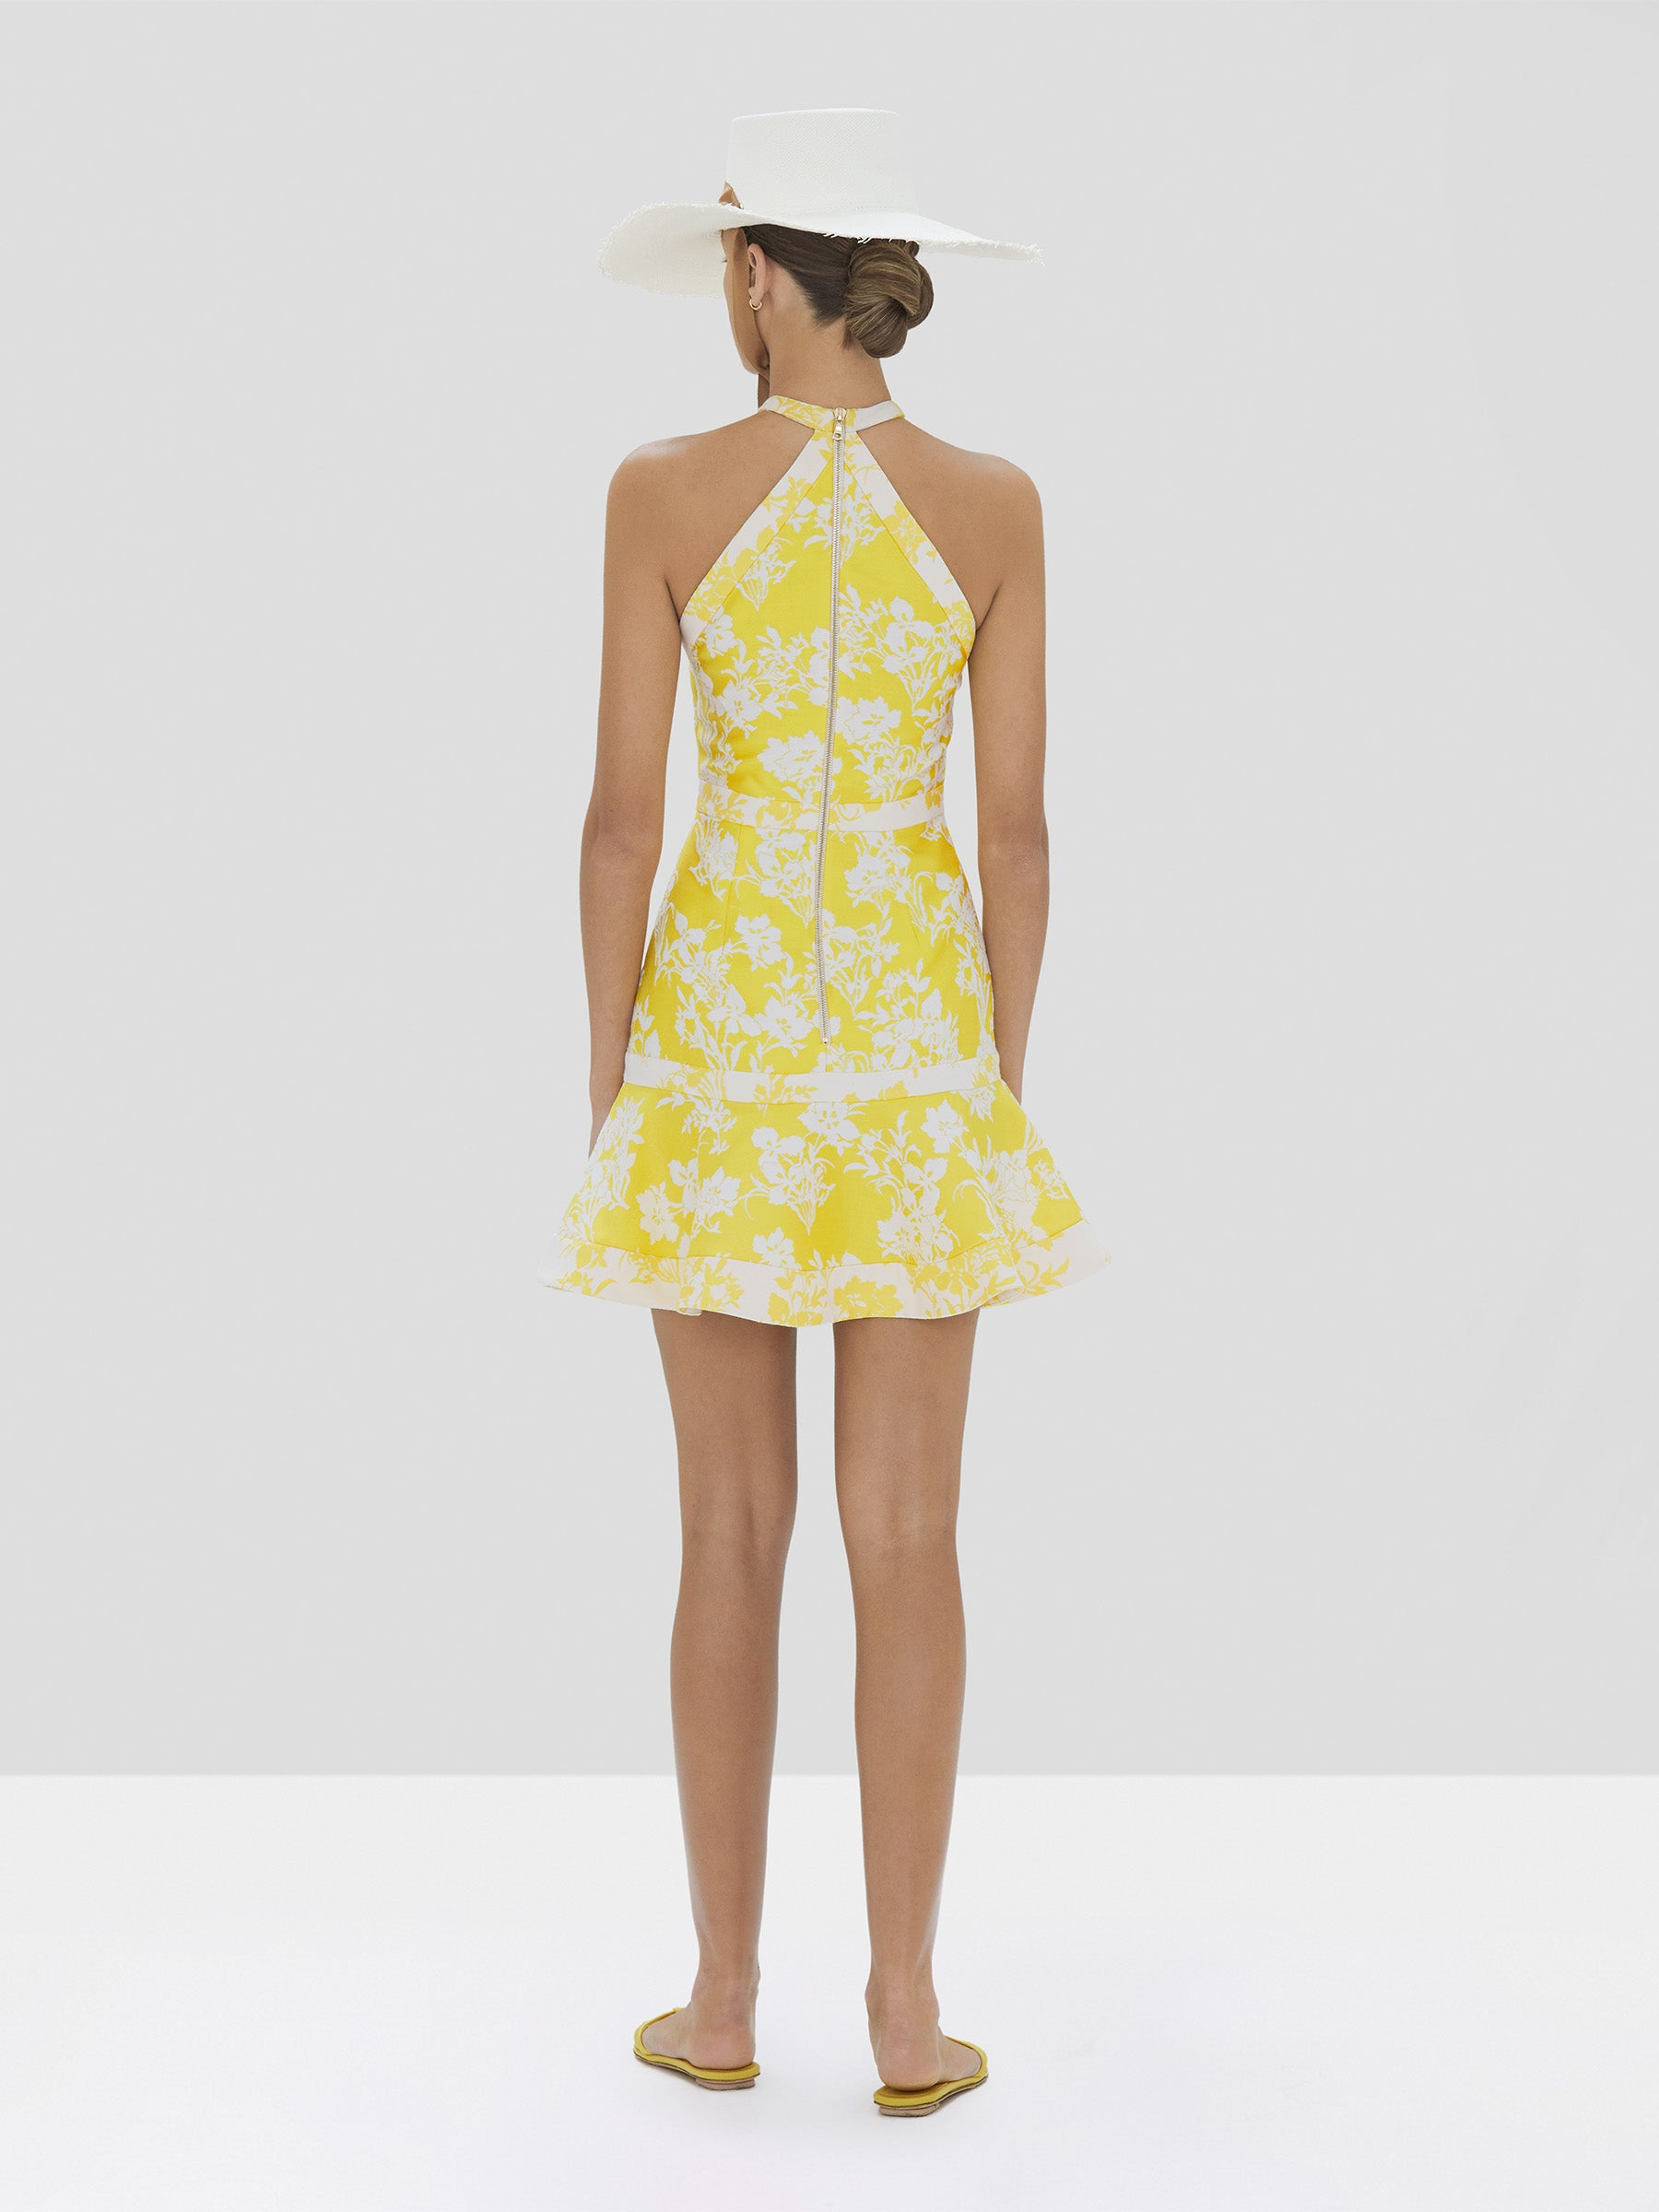 Alexis Solana Dress in Citrus Jacquard from Spring Summer 2020 Collection - Rear View